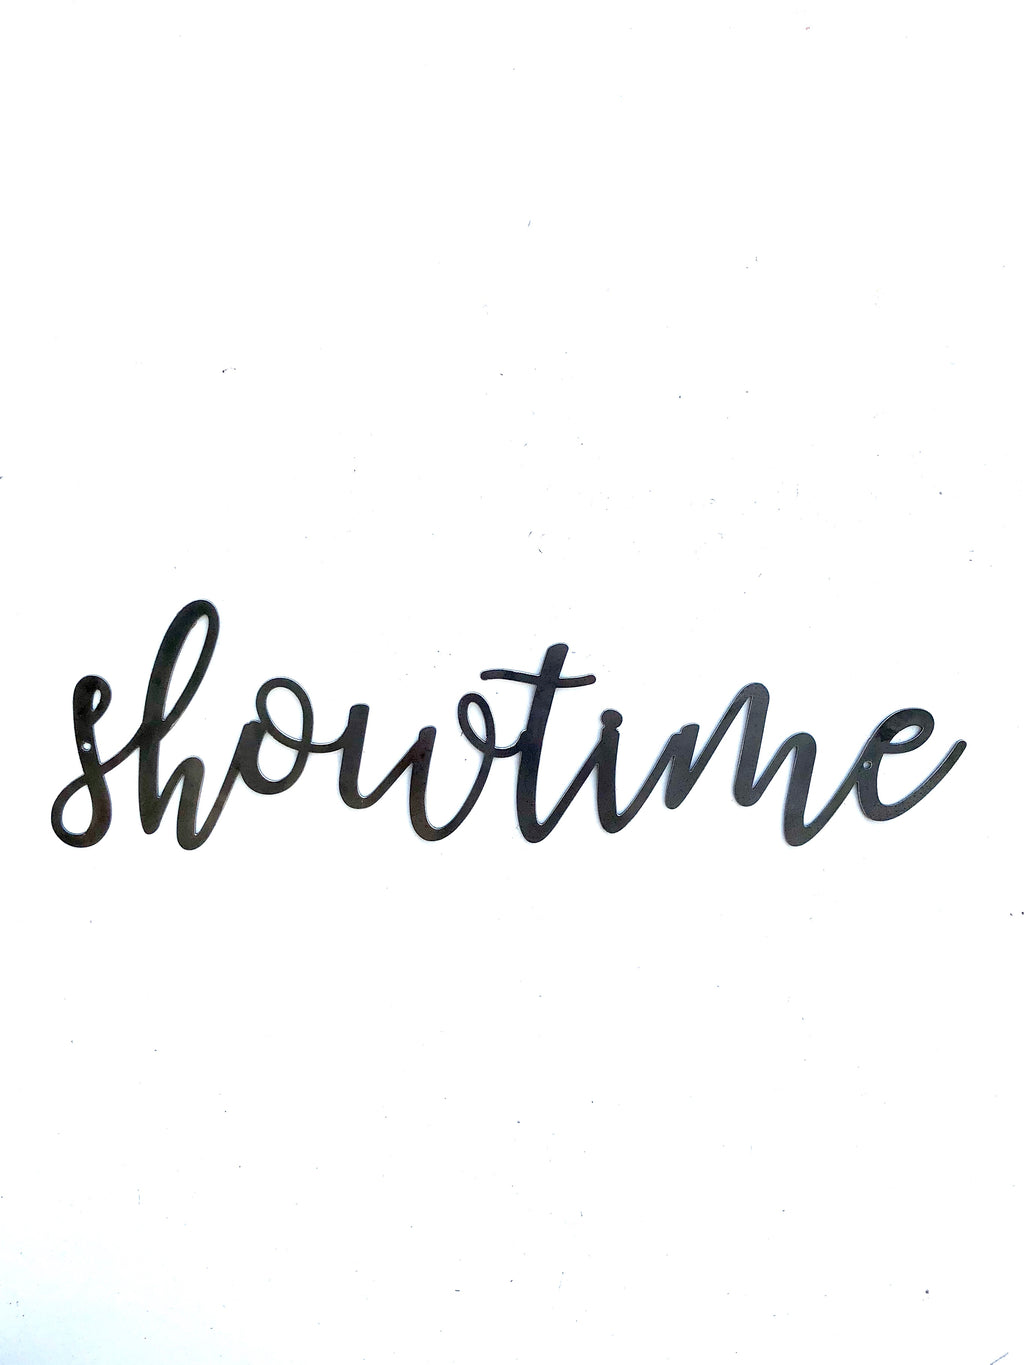 Showtime Script Metal Word Wall Expressions